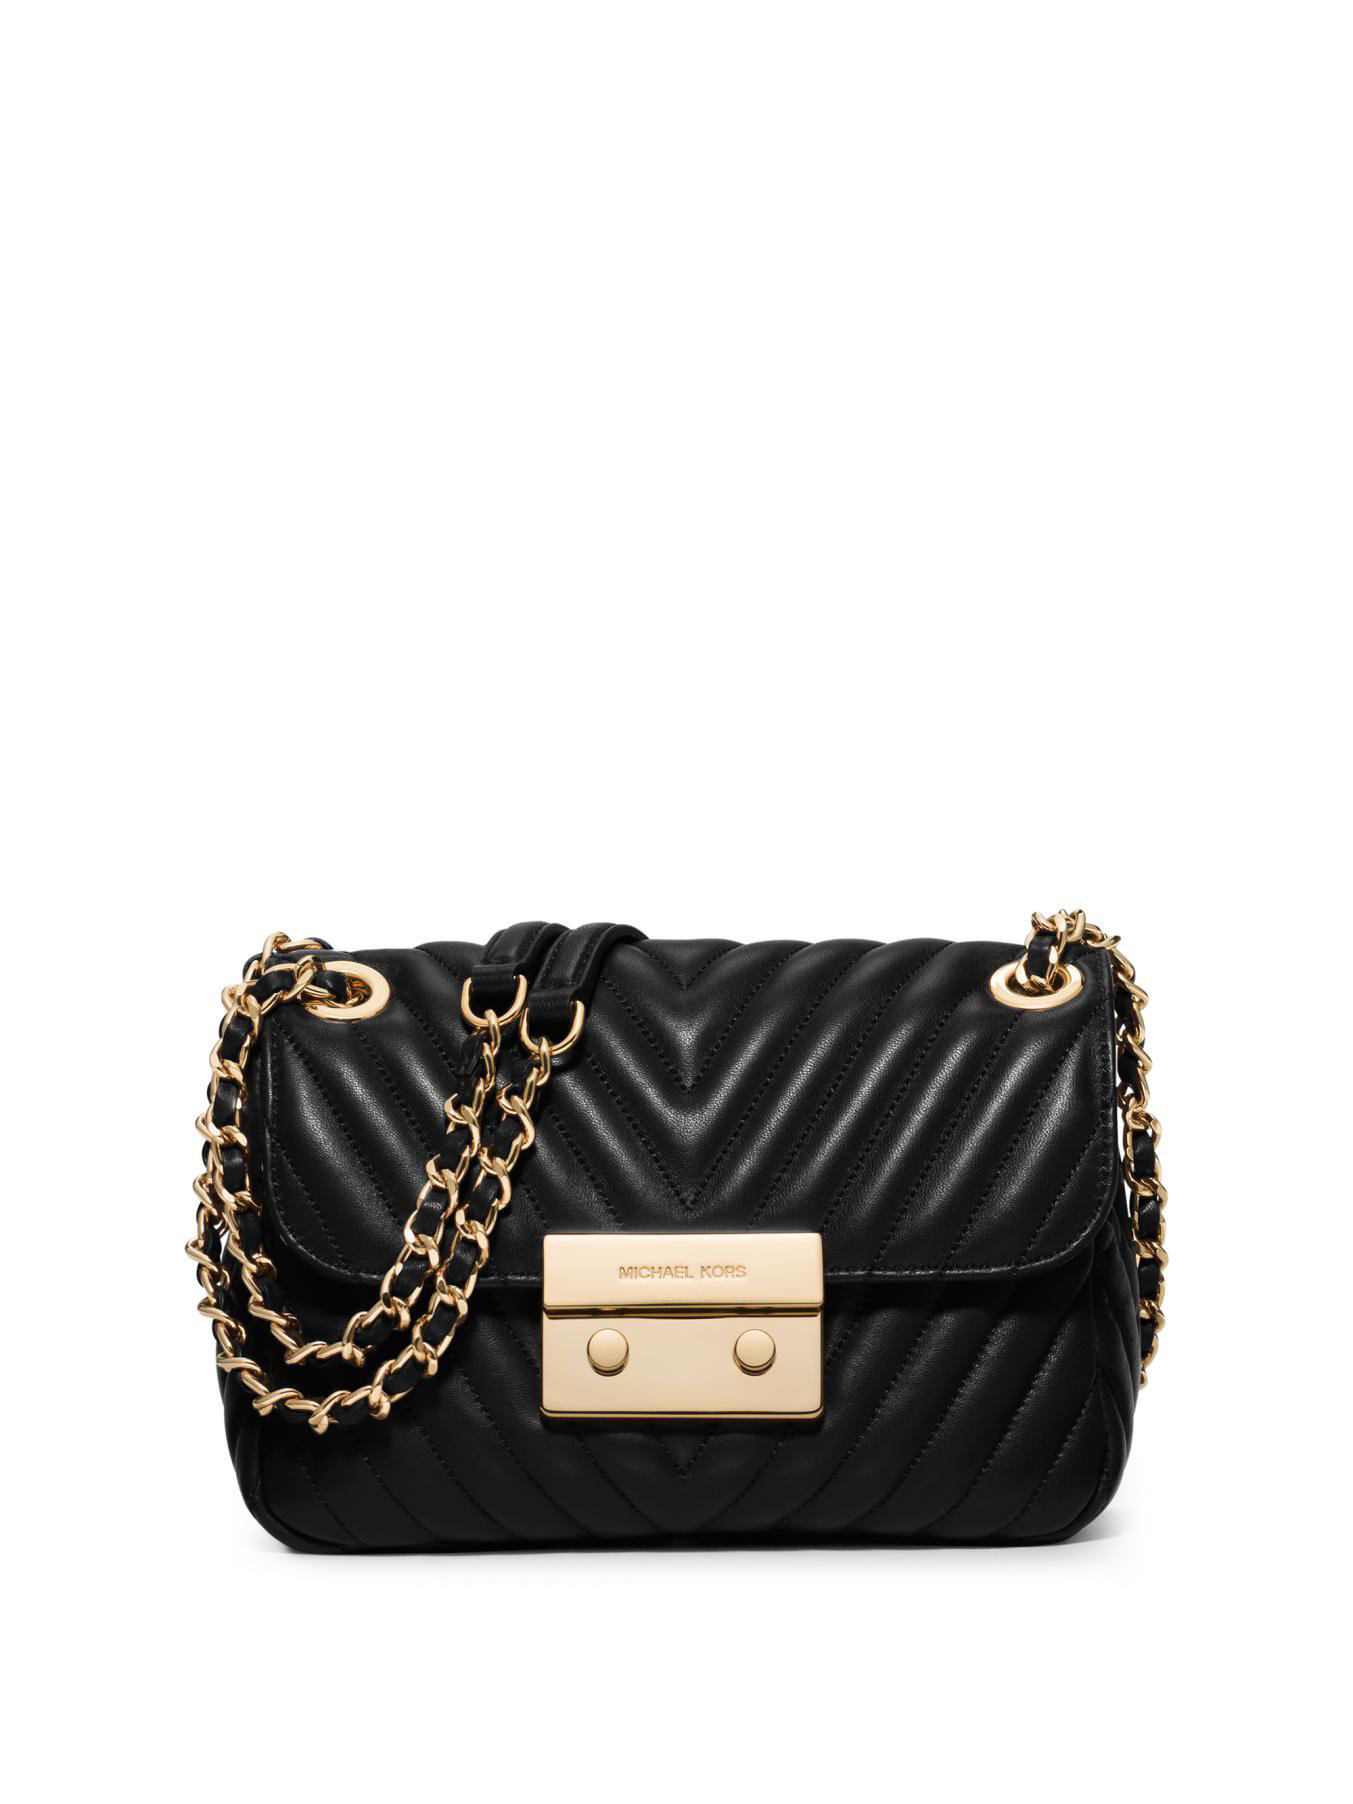 8654469a39f Gallery. Previously sold at  Saks Fifth Avenue · Women s Michael By Michael  Kors Sloan Women s Michael Kors Quilted ...